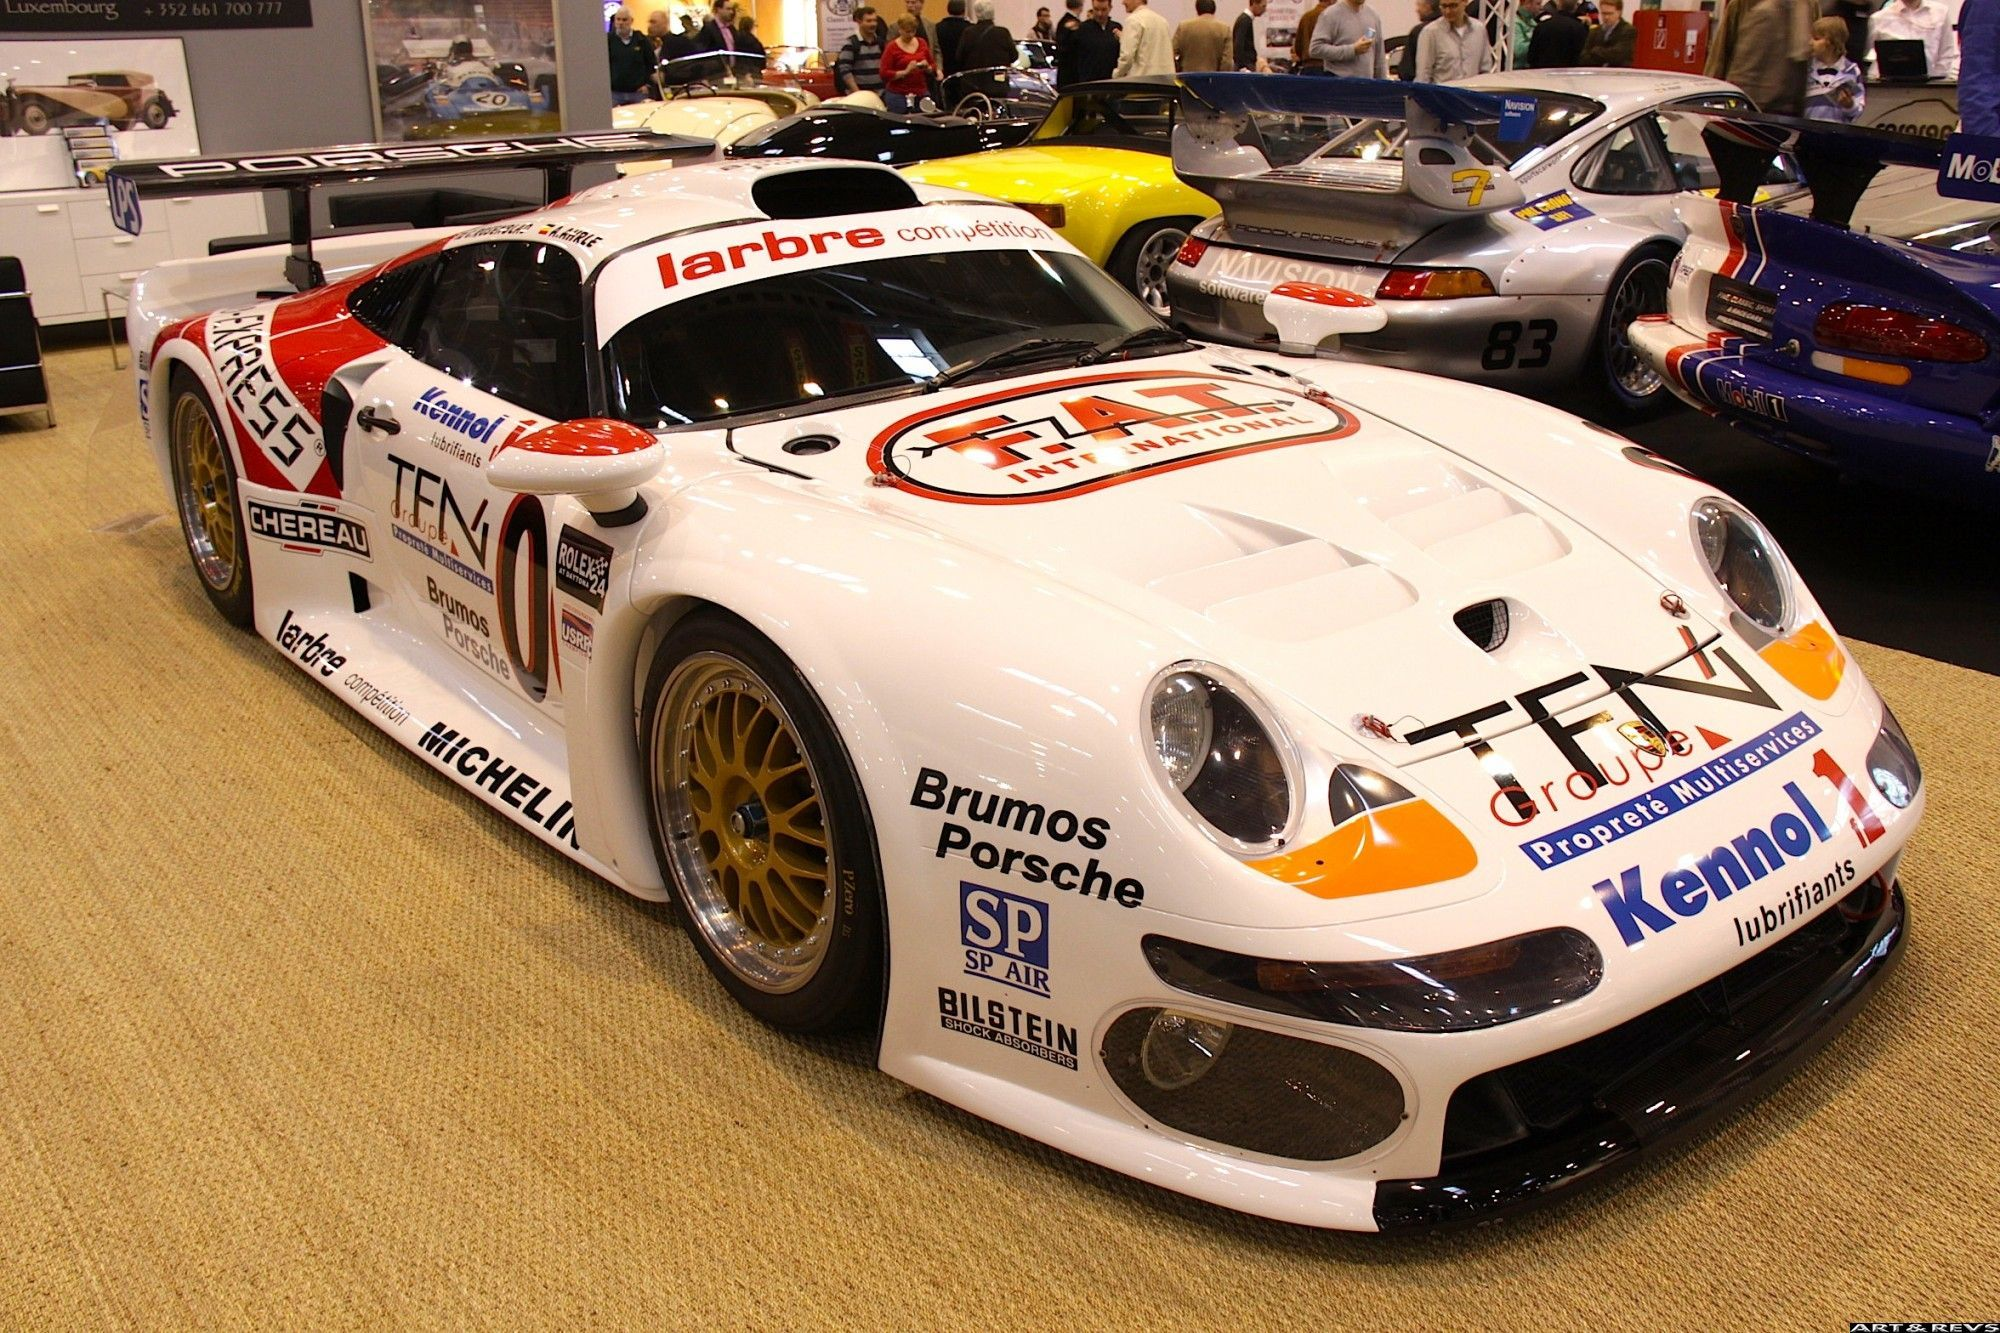 1fd1ce913a29406d03c95c012bf5ba2b Terrific Porsche 911 Gt1 Le Mans 1996 Cars Trend